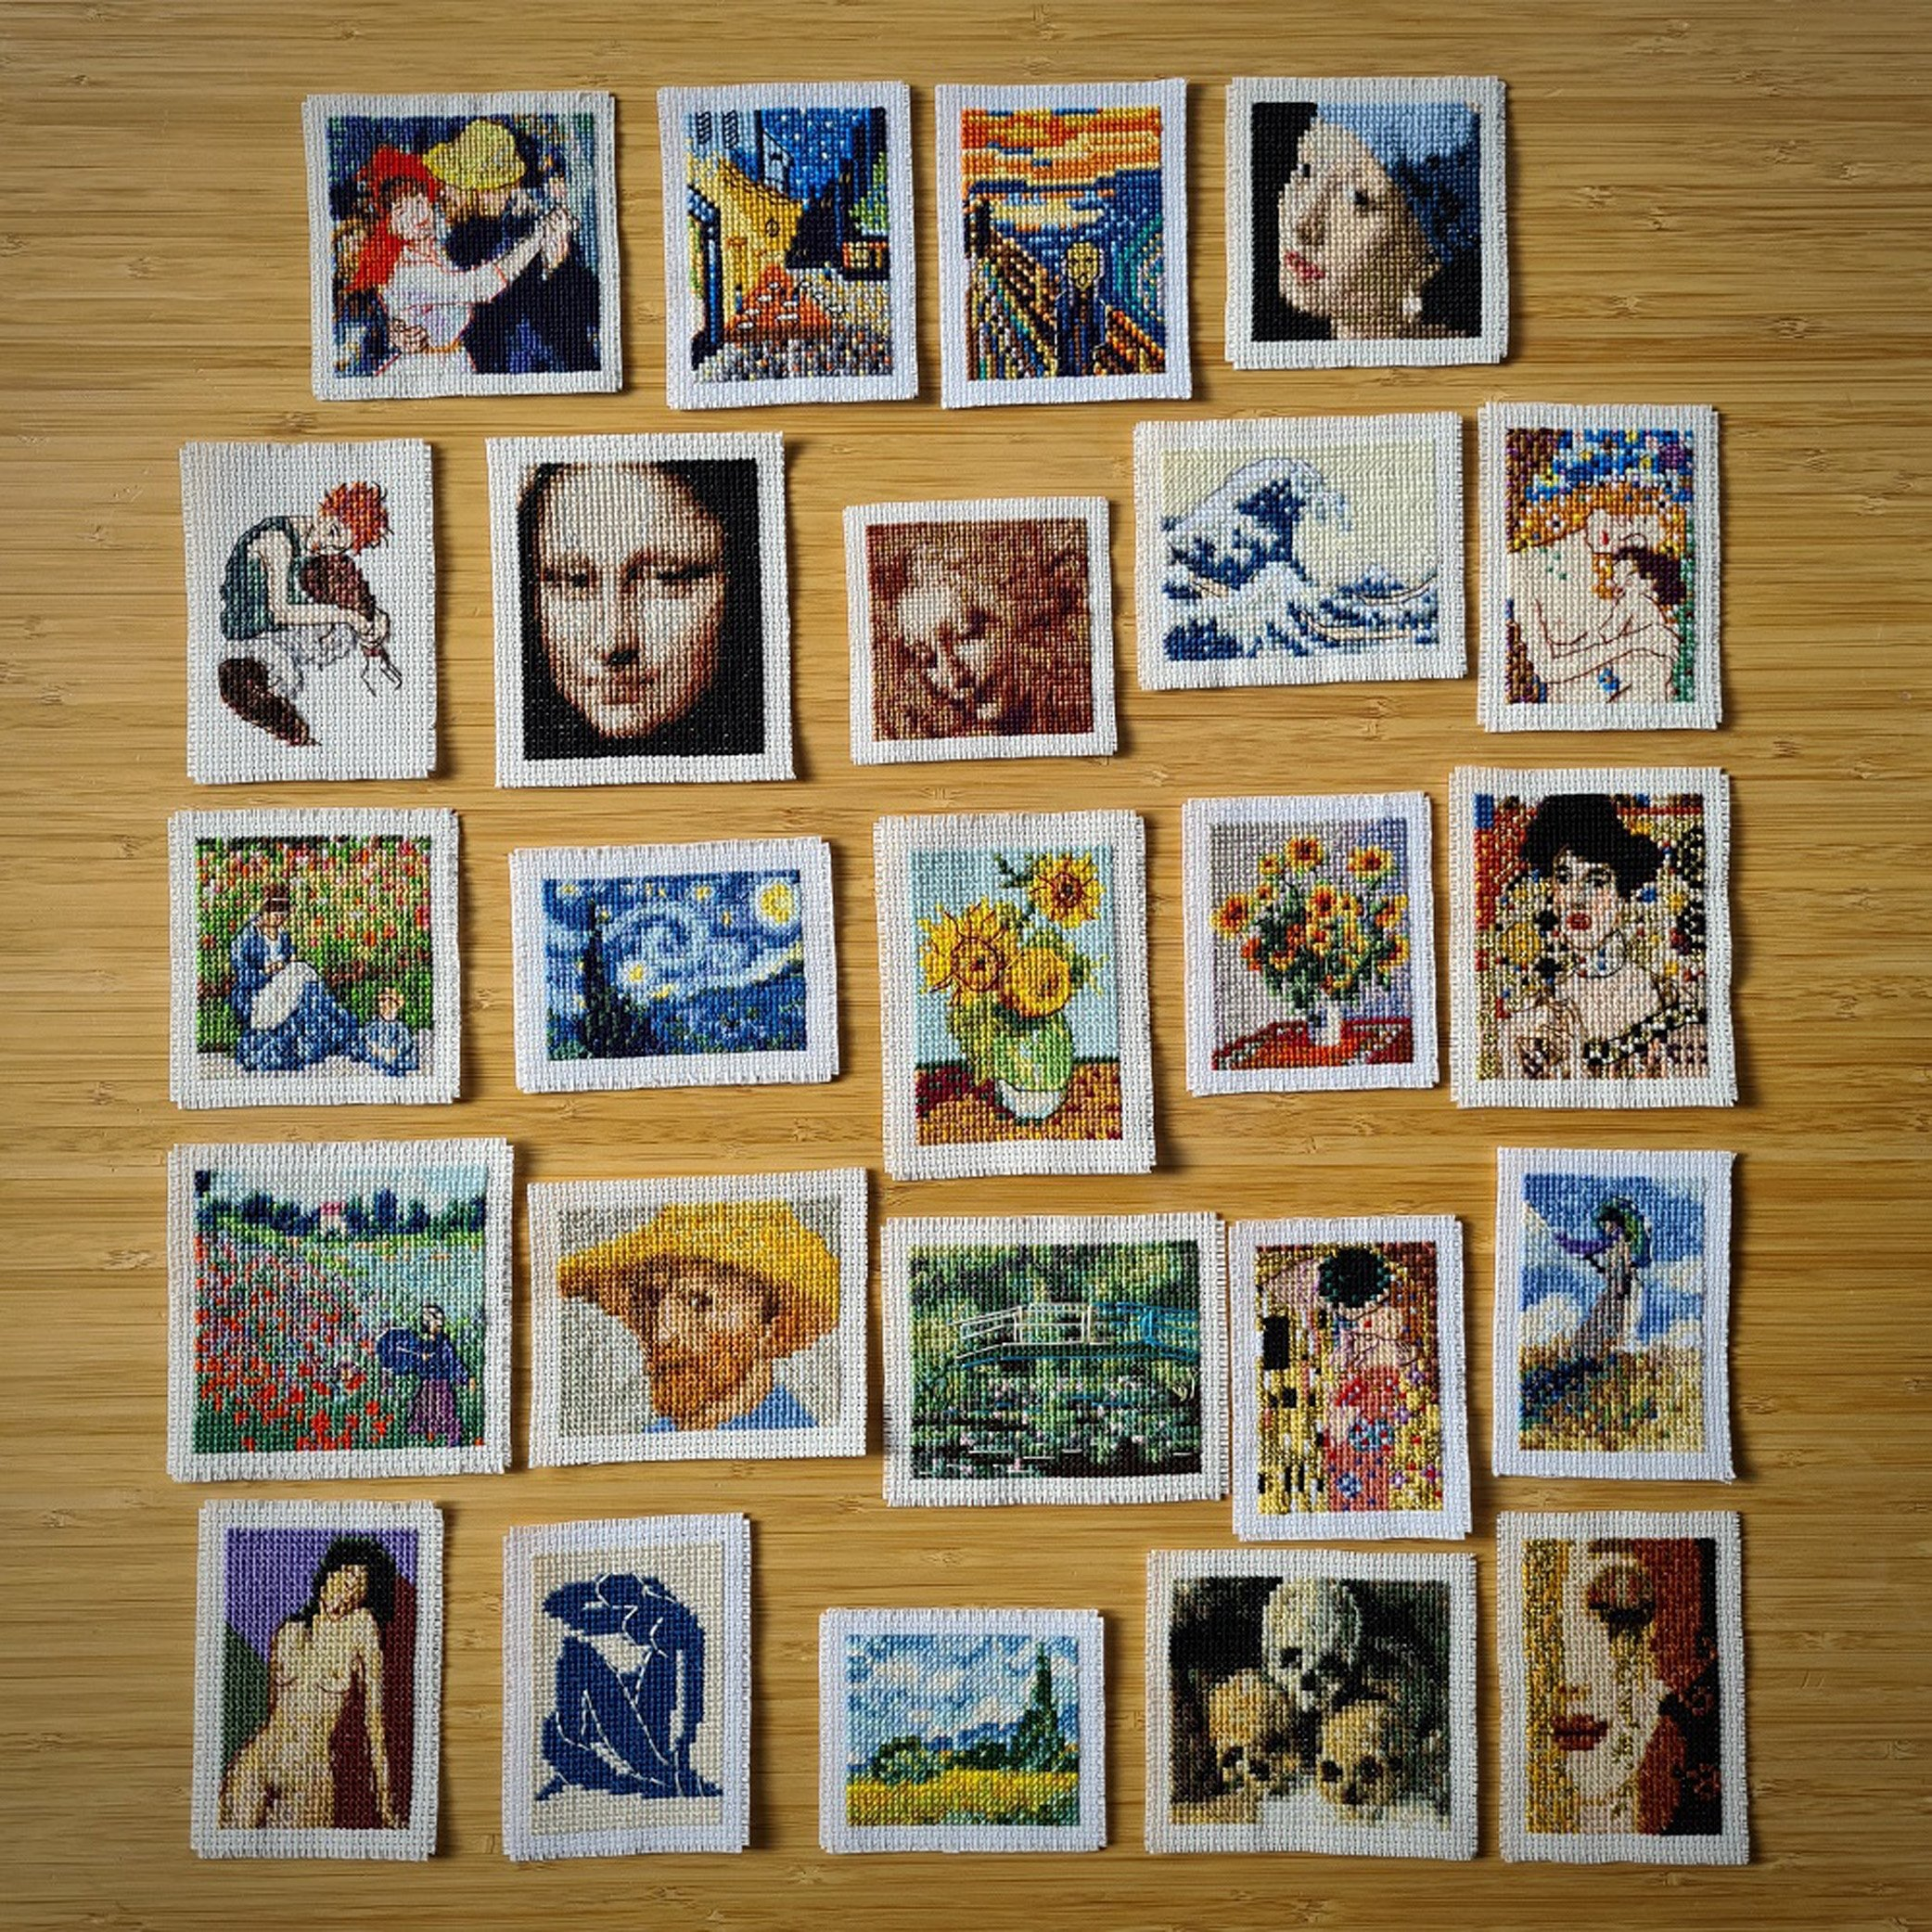 A photo of a part of Elçin Özcan's mini-gallery comprising of cross-stitch versions of the world's most famous masterpieces. (DPA Photo)